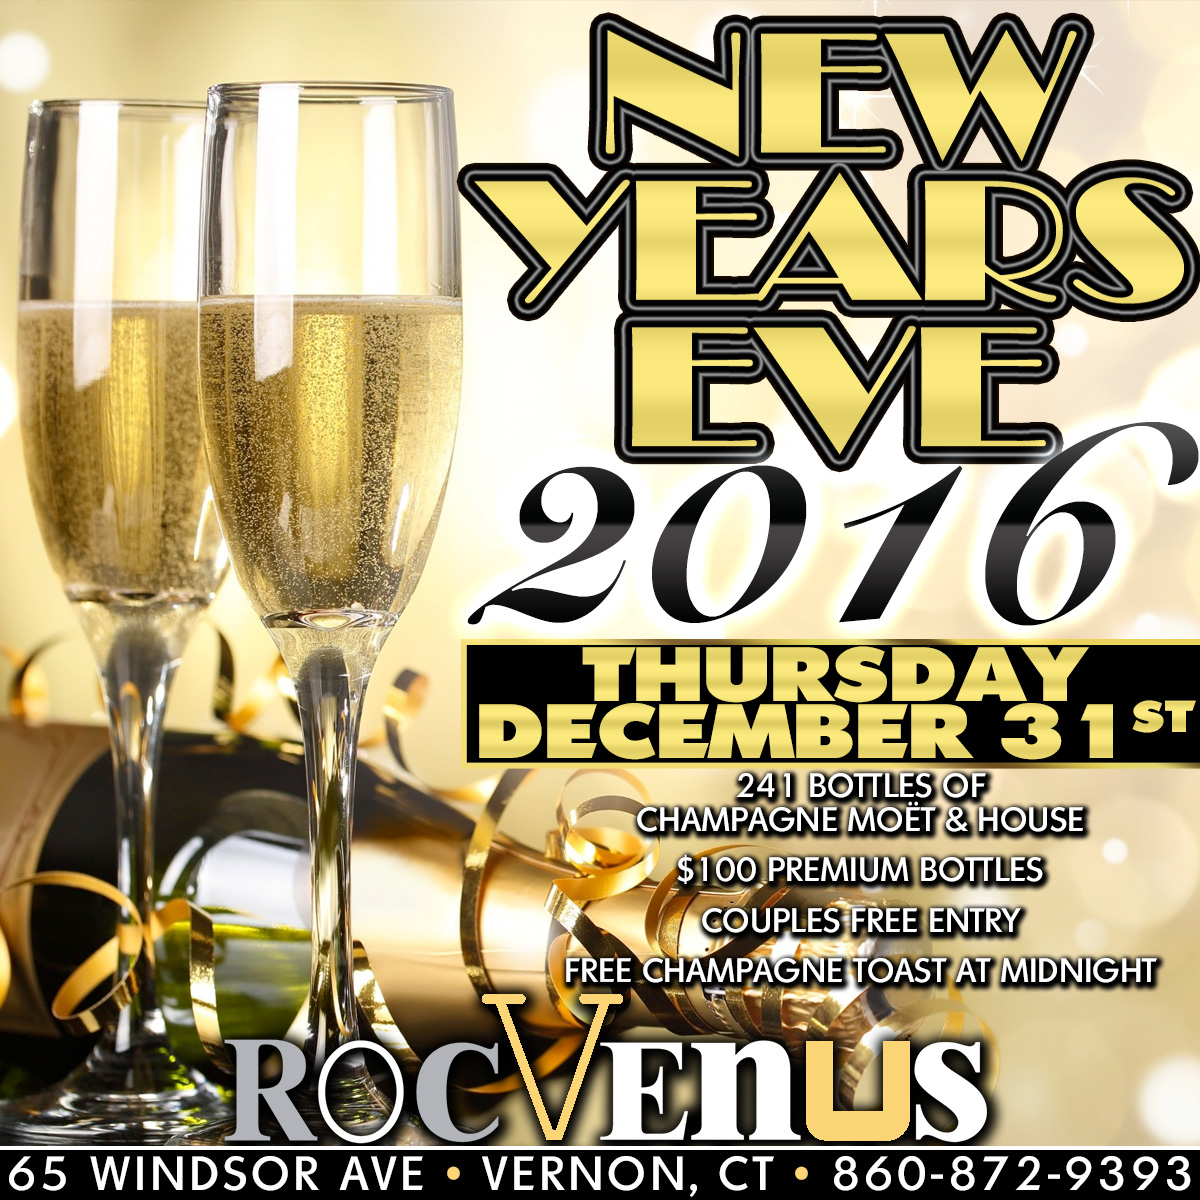 New Years Eve | RocVenus Strip Club Connecticut CT